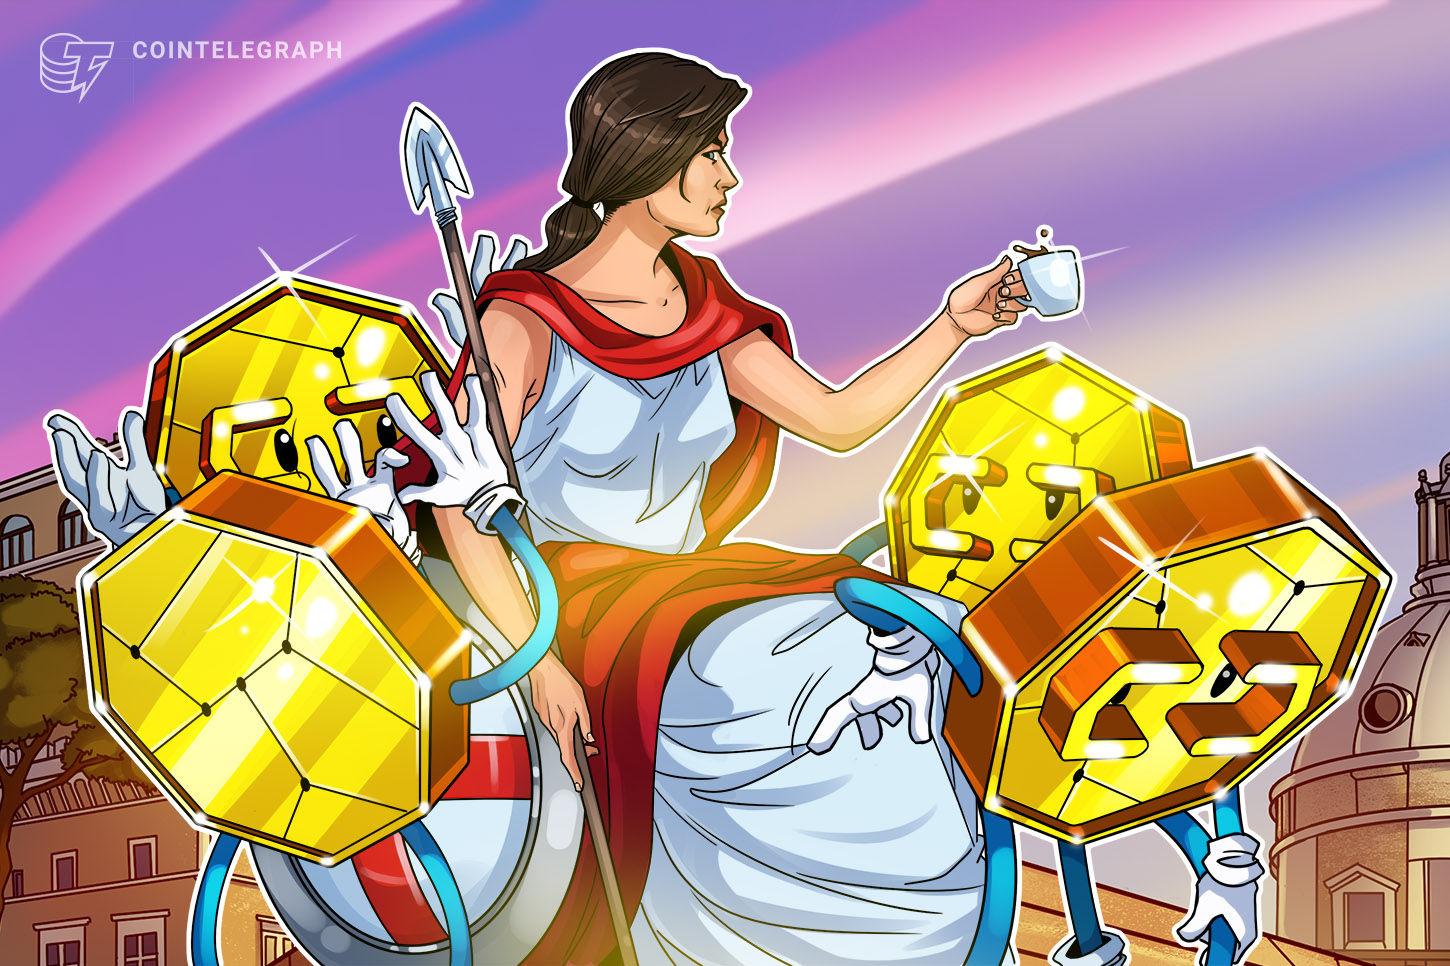 UK will hold back action against crypto 'pockets of exuberance' for now